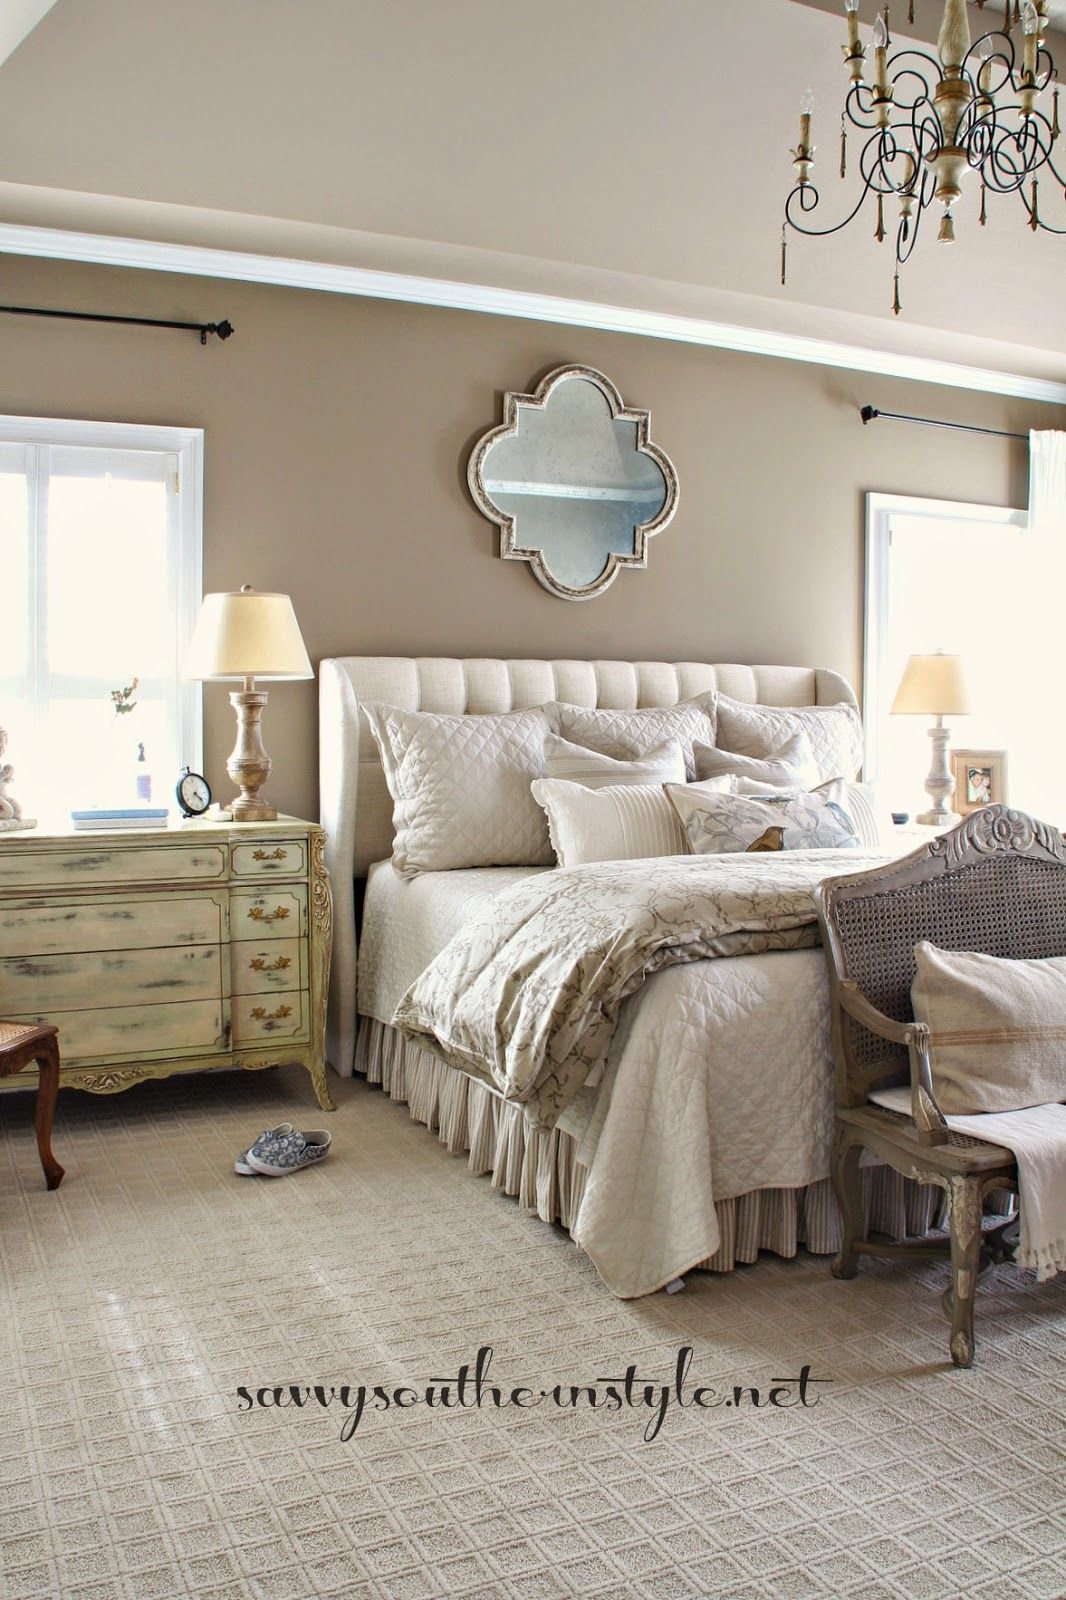 Wh what are good colors for bedrooms - Neutral Master Bedroom French Style Restoration Hardware Bedding Pottery Barn Bedding French